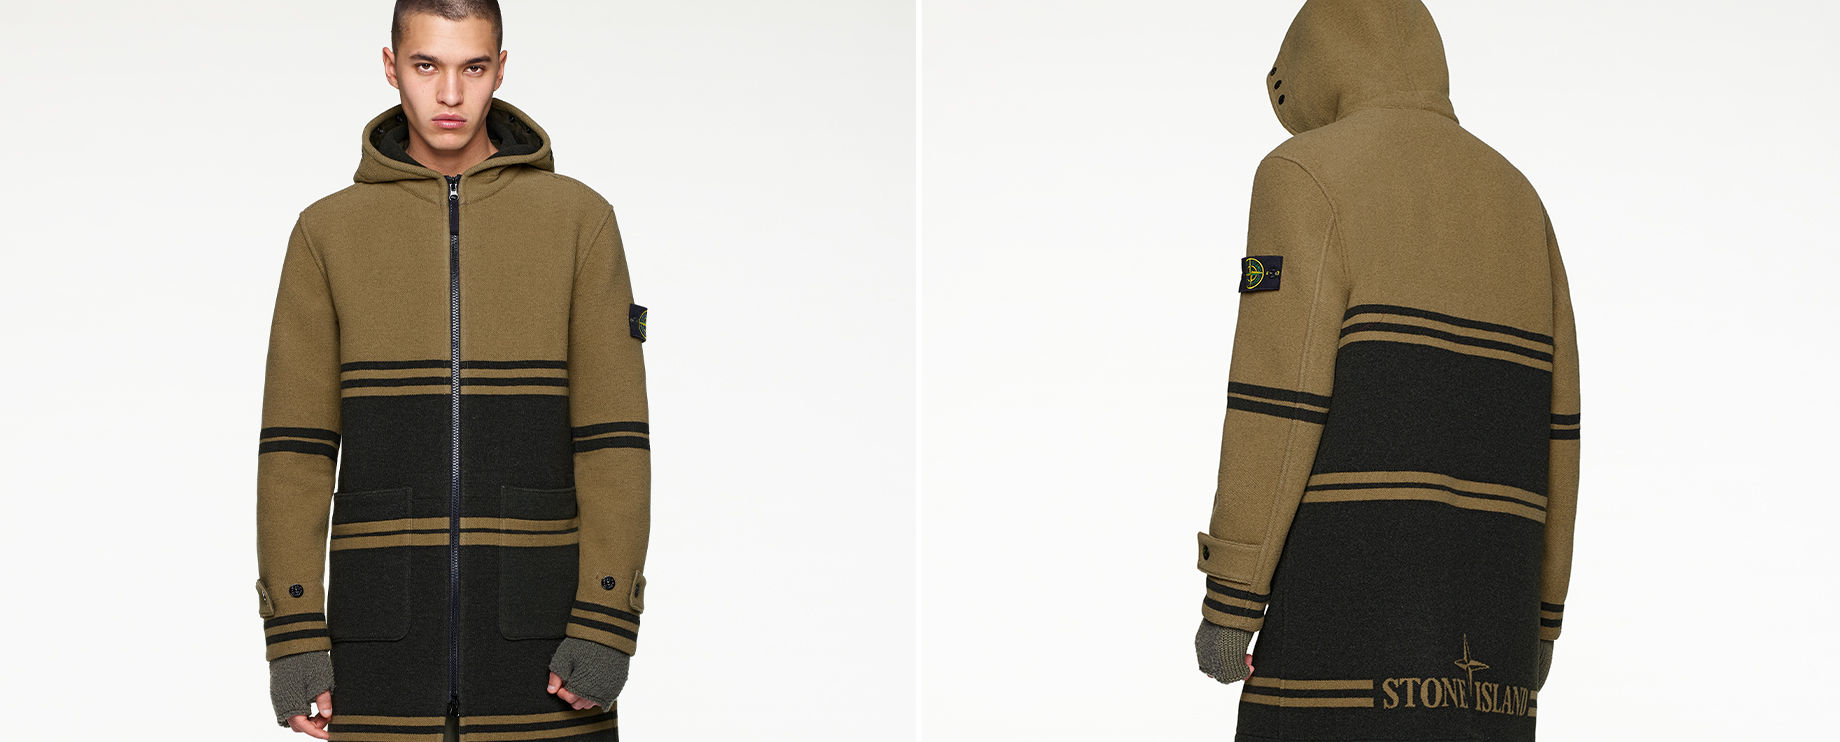 Front and back views of model wearing green and dark green striped, hooded jacket with black zipper fastening.